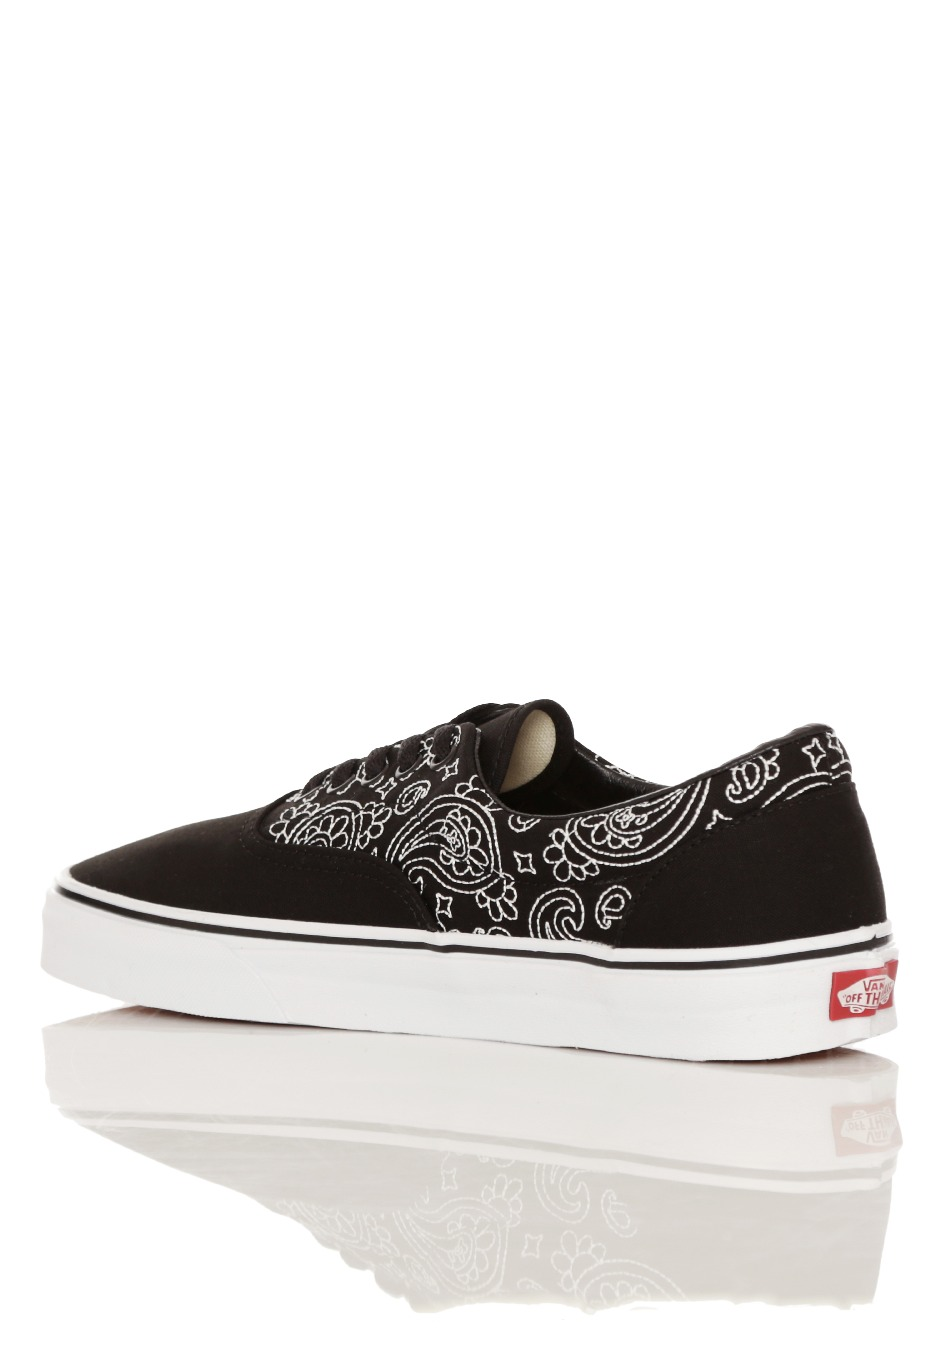 ... Vans - Era Bandana Stitch Black/True White - Shoes ...